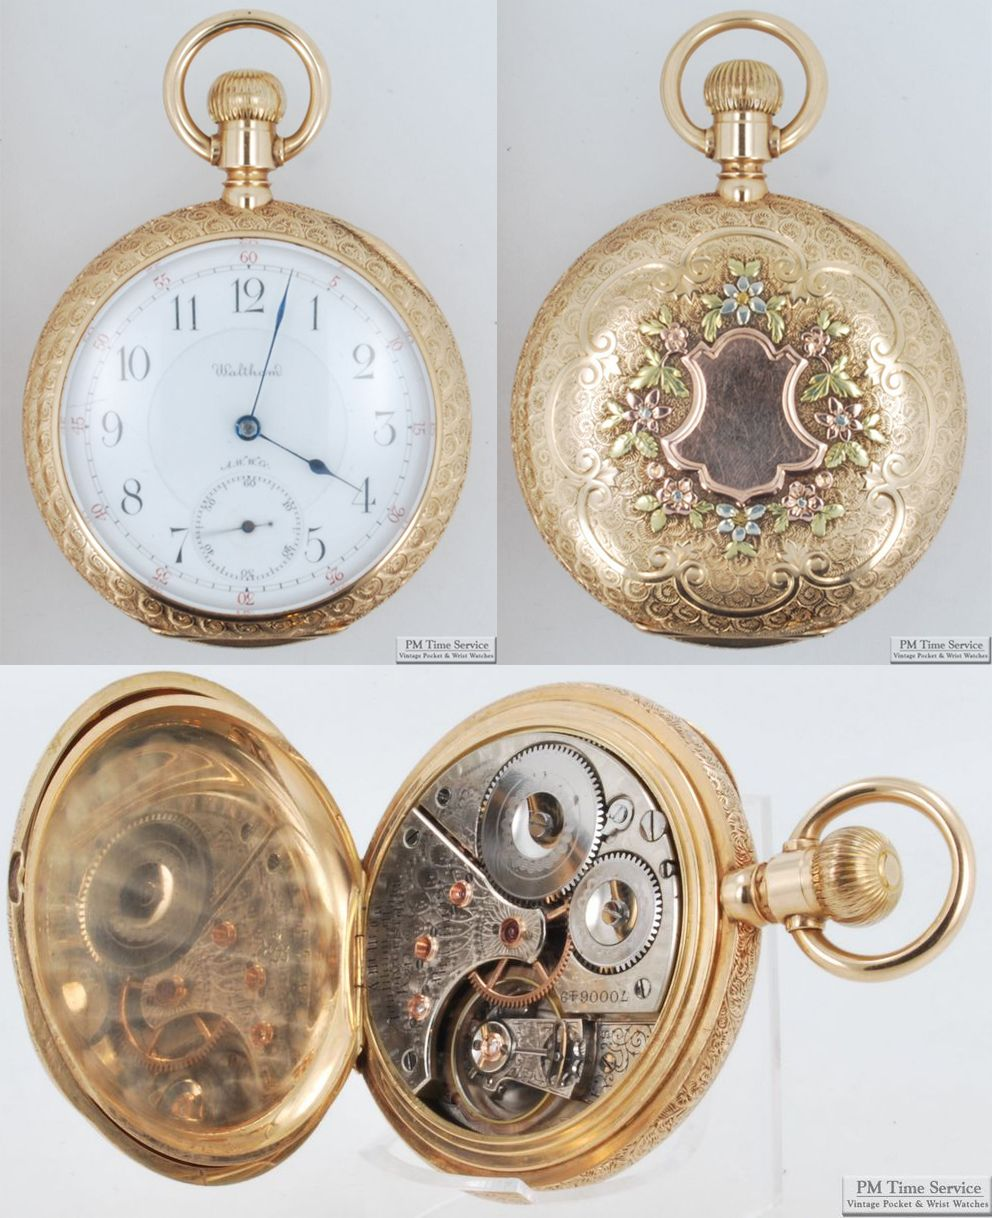 0b0362f5a Vintage Pocket Watch · Dial, case, and movement photos of a high-grade vintage  Waltham